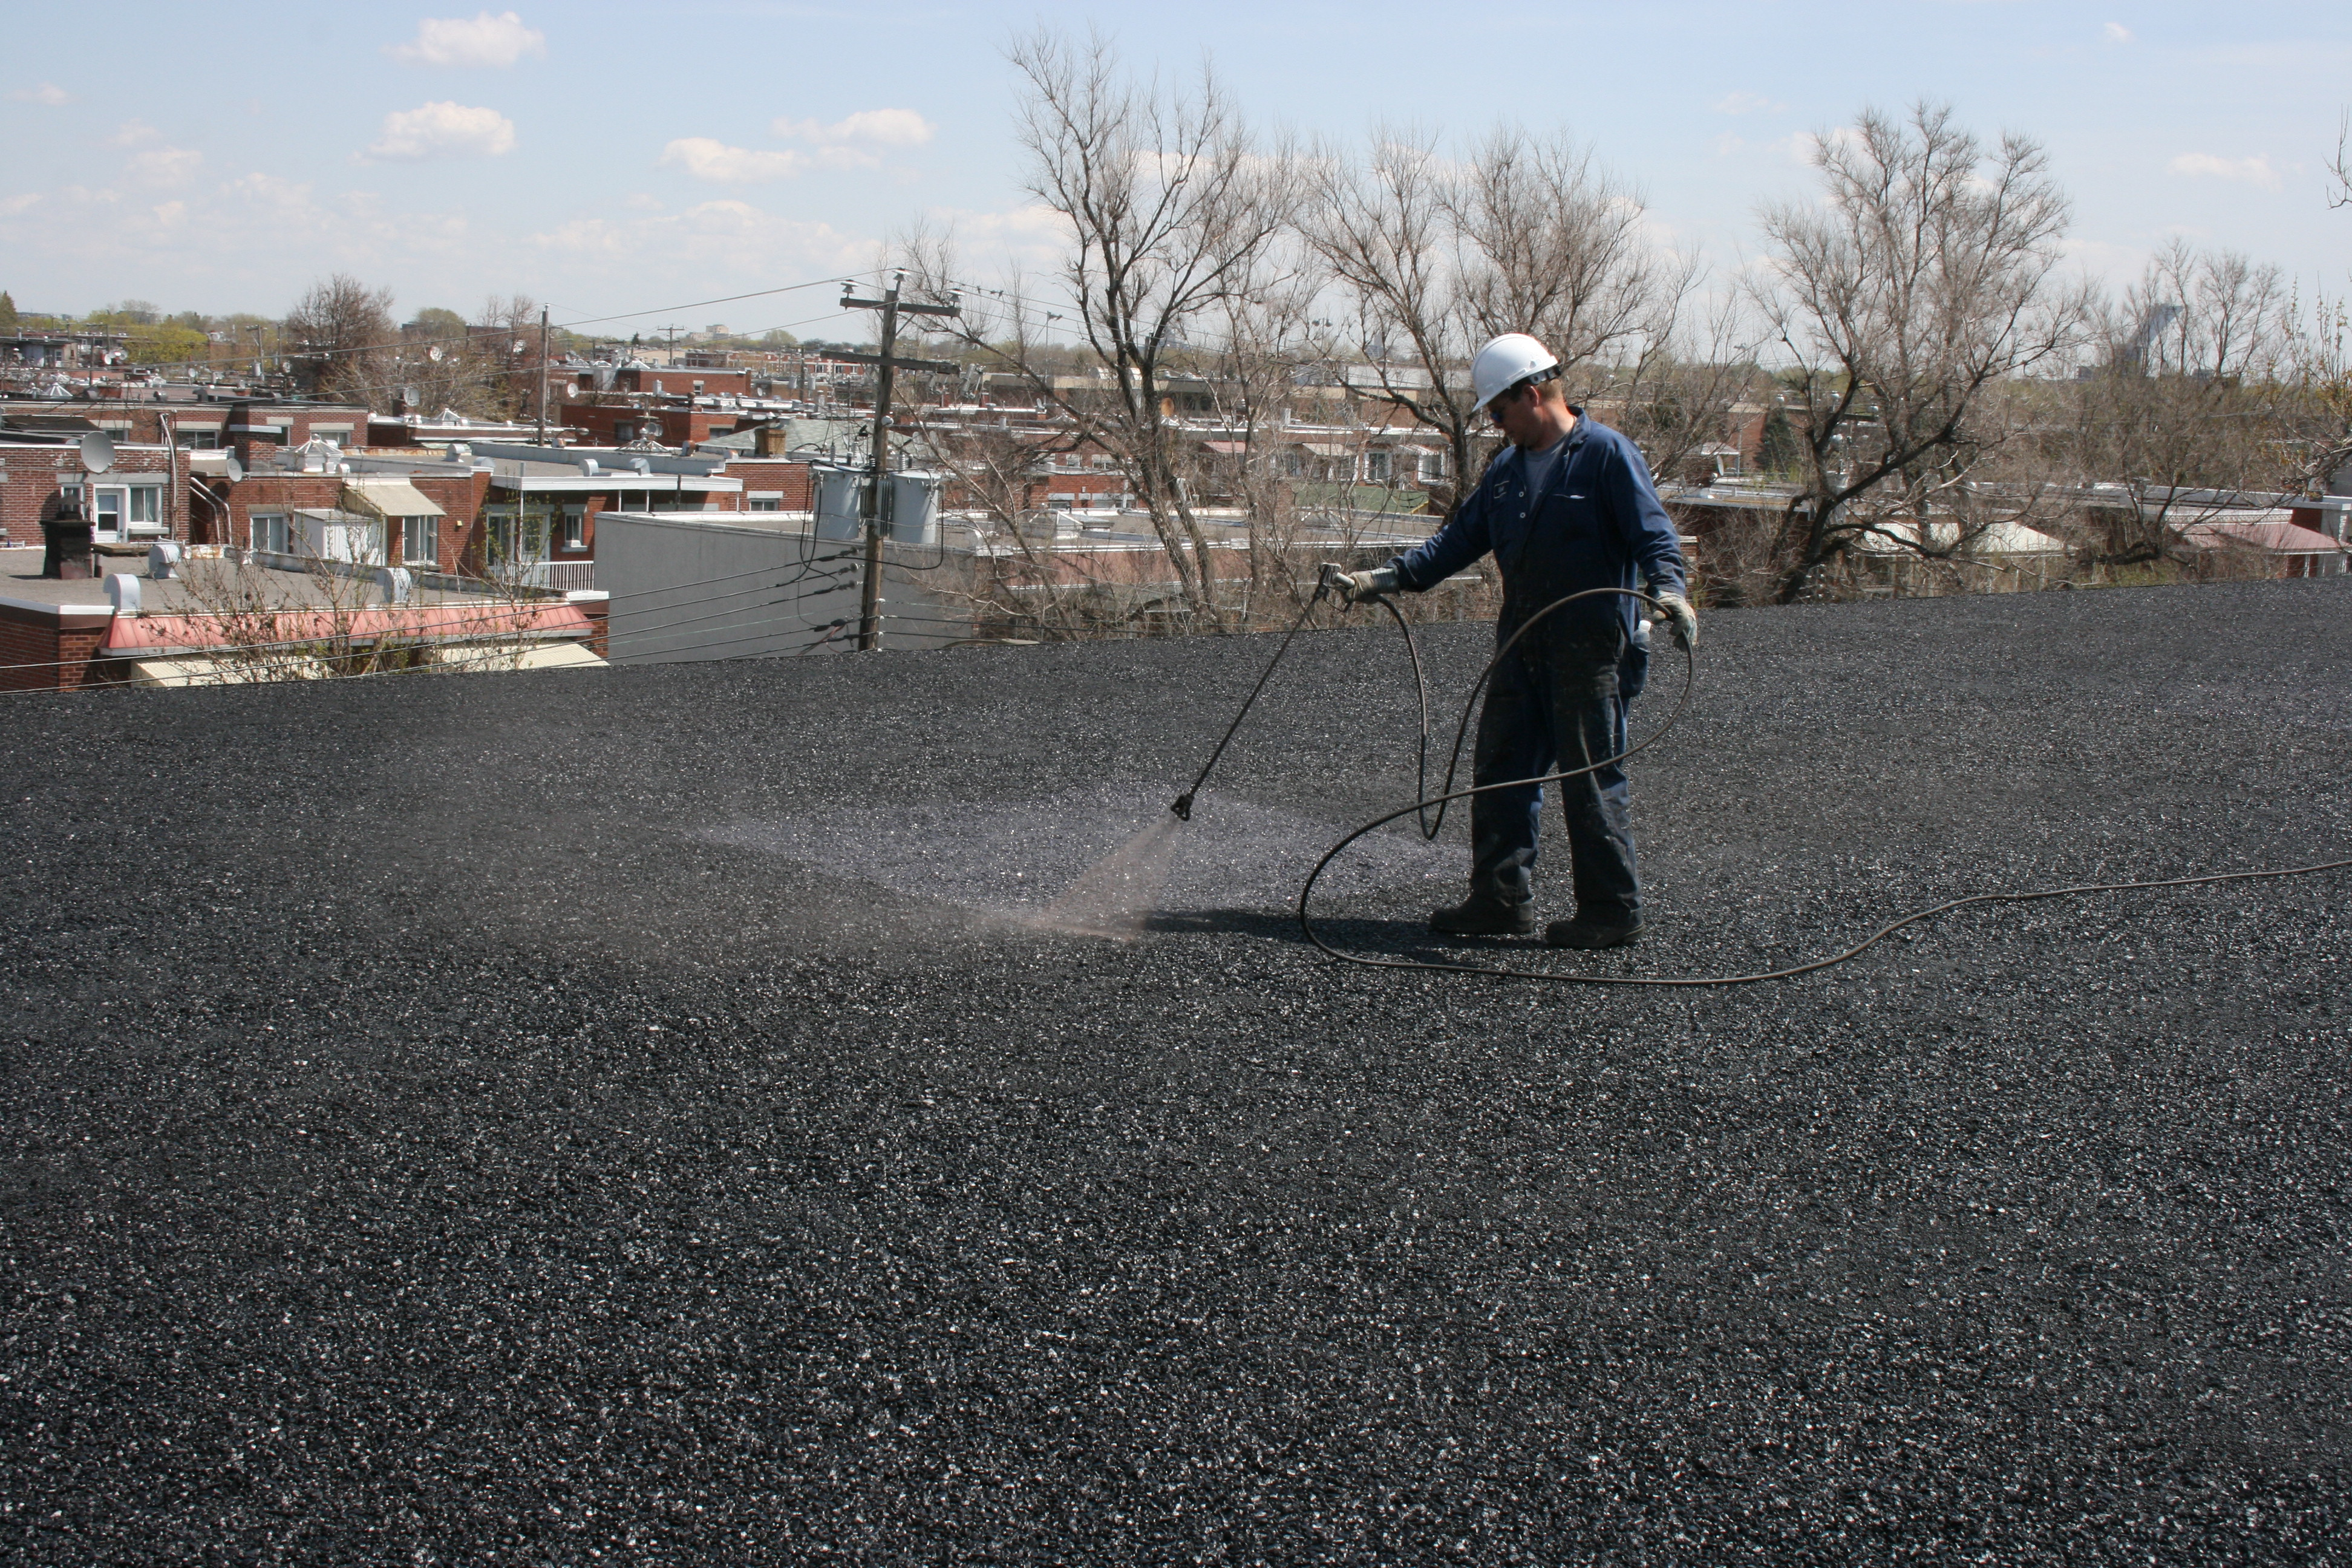 Commercial Flat Roofing Solutions - Montreal March 2009 171